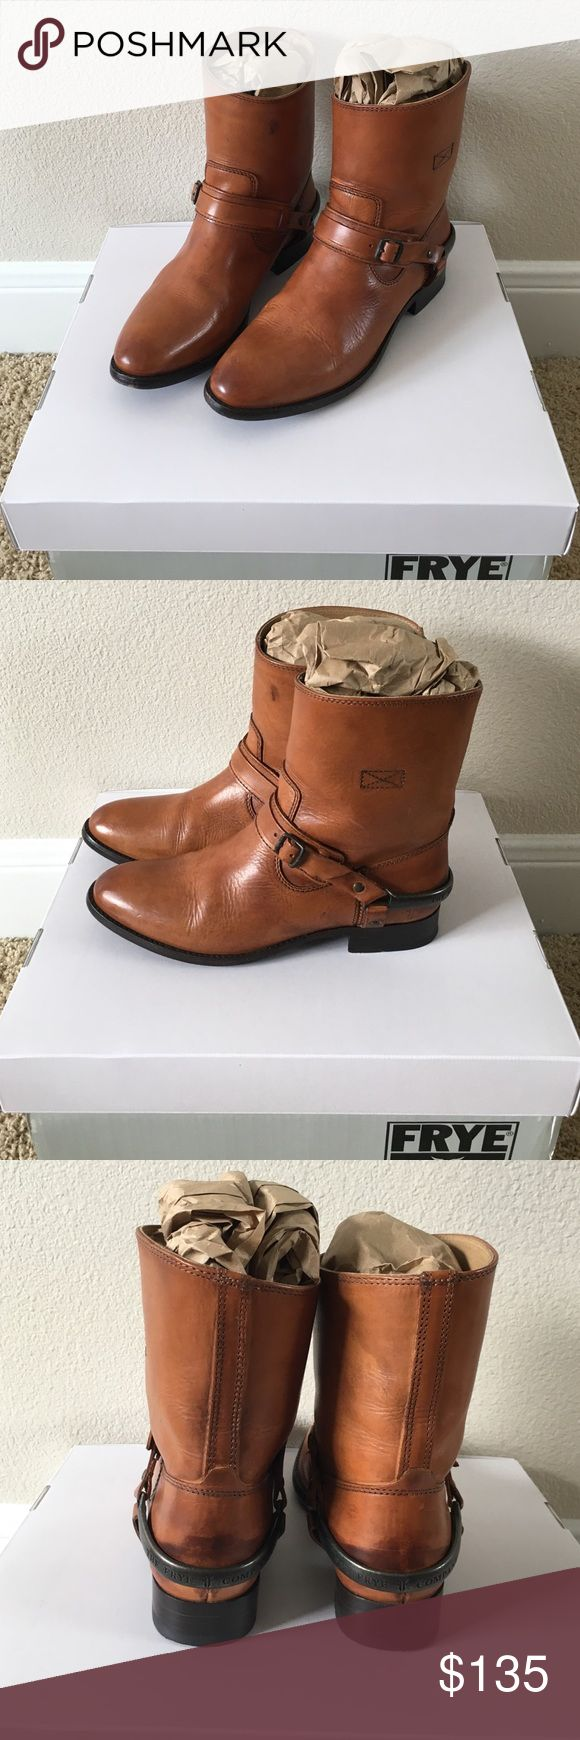 Frye Lindsay Spur short boots size7.5 Fyre Lindsay Spur Short boots.Size 7.5M.I usually wear 7.5 in sneakers and 8 in most heels, for boots sometimes I pick 8 or 8.5 so I could wear thick socks.                                (⁎⁍̴̛ᴗ⁍̴̛⁎)These boots are so beautiful, I kept them even they were too small for me. I wore 2 or 3 times and got a lot compliments everytime. I really like them but they are not my size.Hope they find a new home Frye Shoes Ankle Boots & Booties